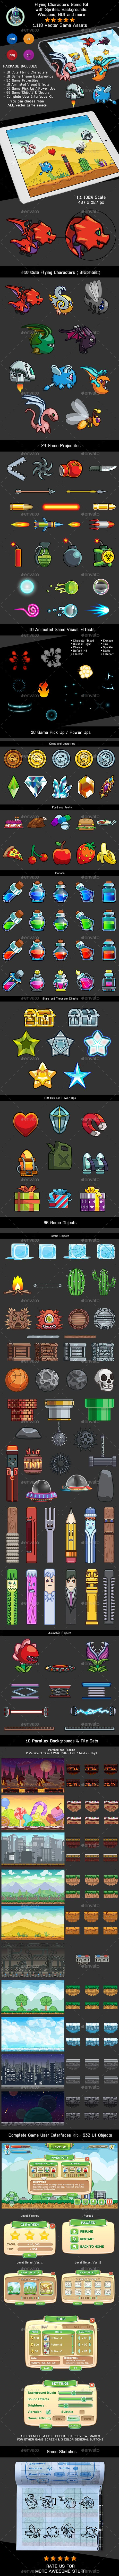 Flying Characters Game Kit - Sprites, Backgrounds, Tilesets, User Interfaces - Game Kits Game Assets